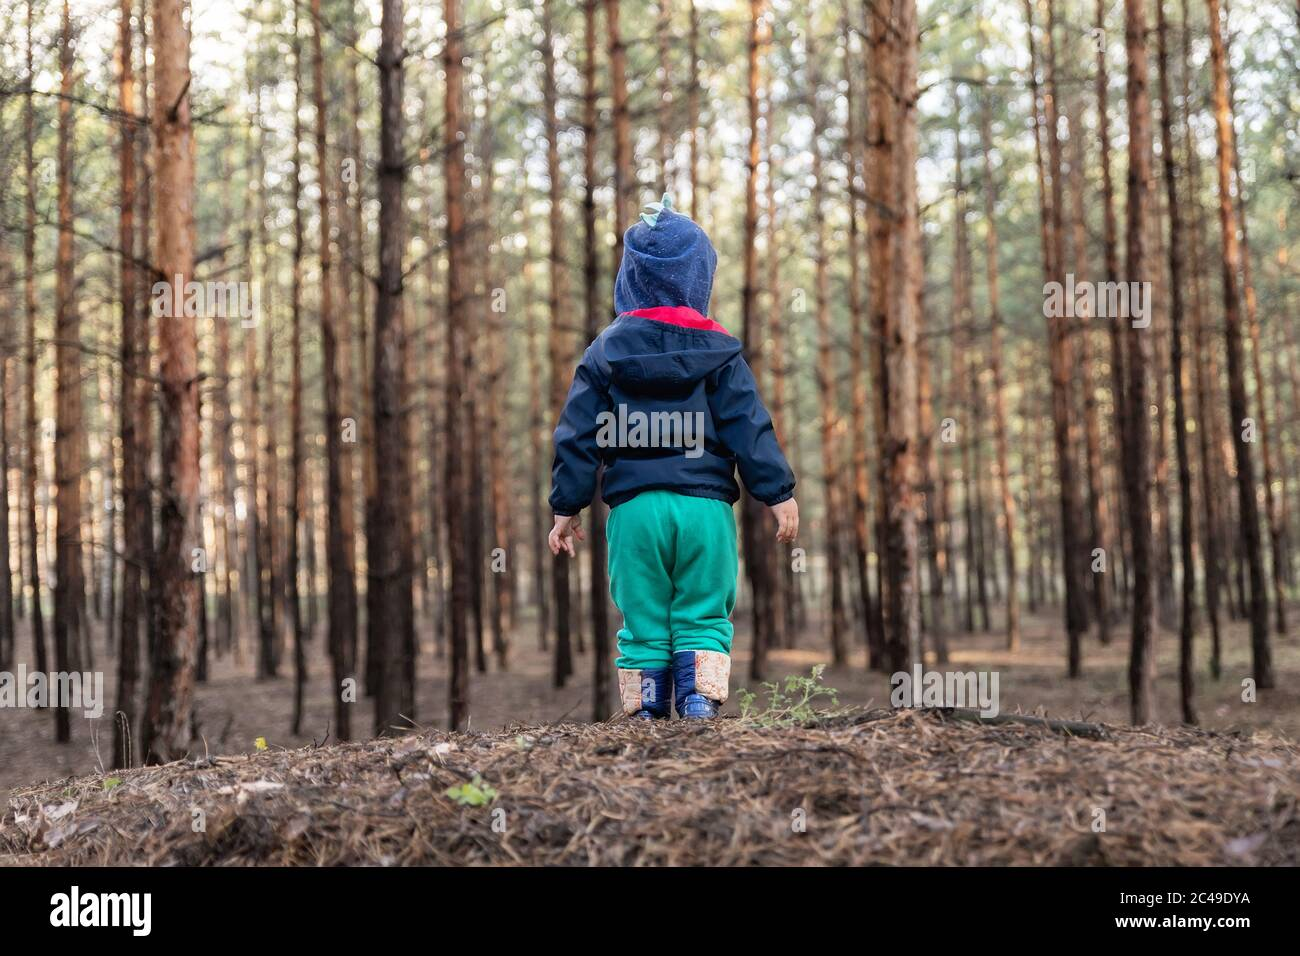 Cute adorable caucasian lonely toddler baby boy standing alone on hill during walk in fall coniferous pine woods at day time. Child lost in forest Stock Photo